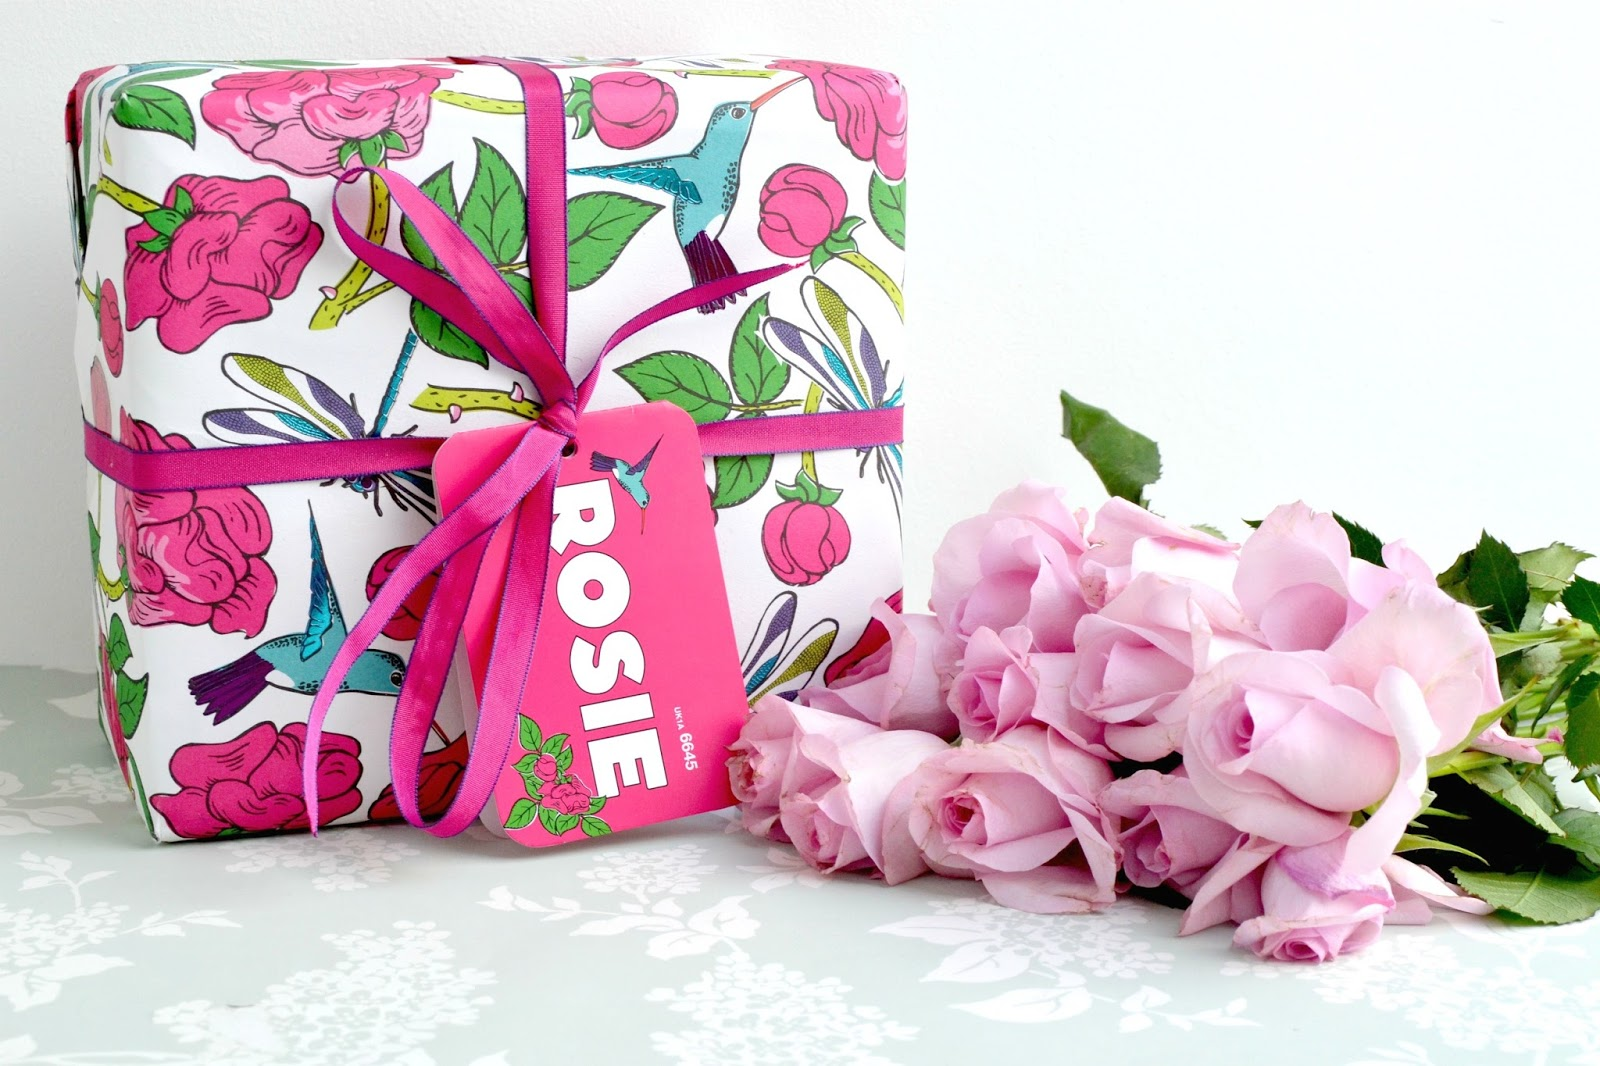 Beauty Review: Lush's Rosie Gift!